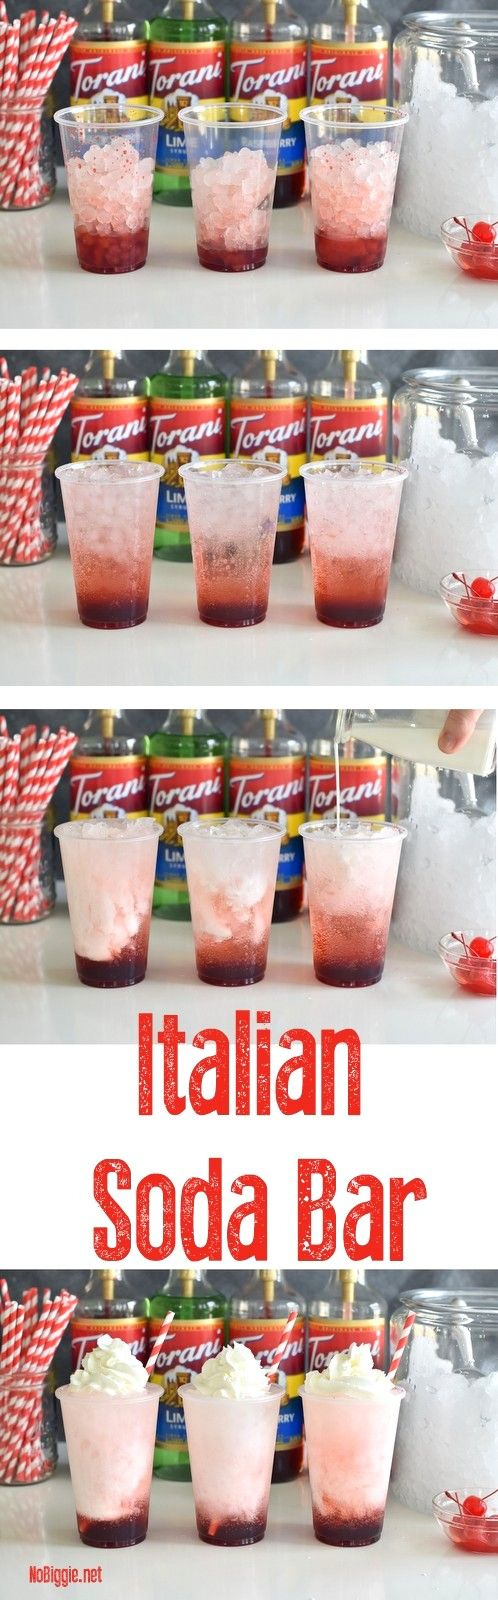 DIY Italian Soda Bar | NoBiggie.net